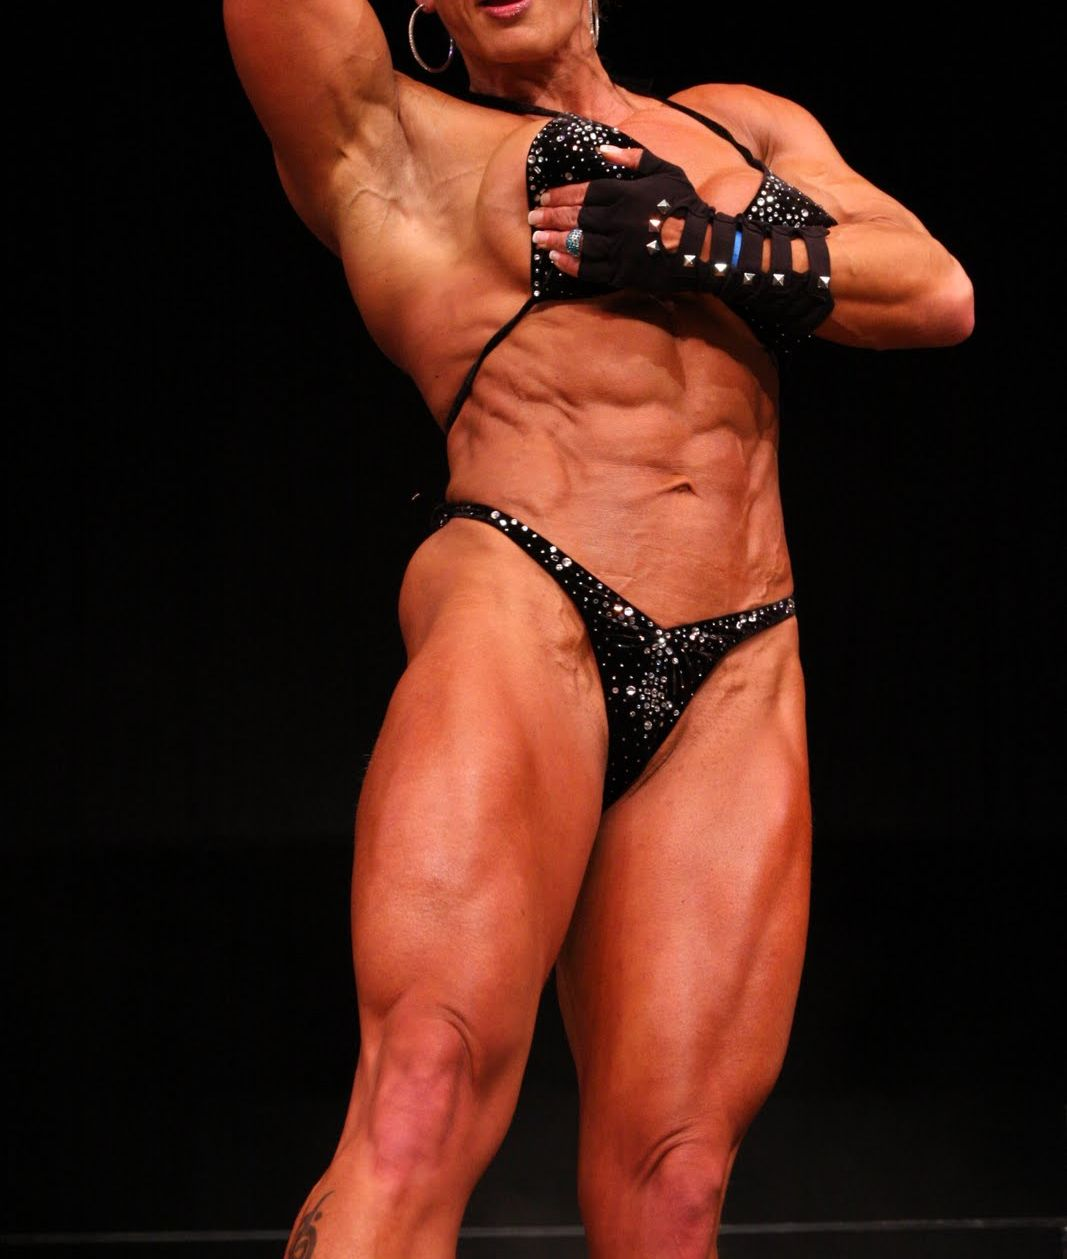 Female bodybuilding and women steroid users